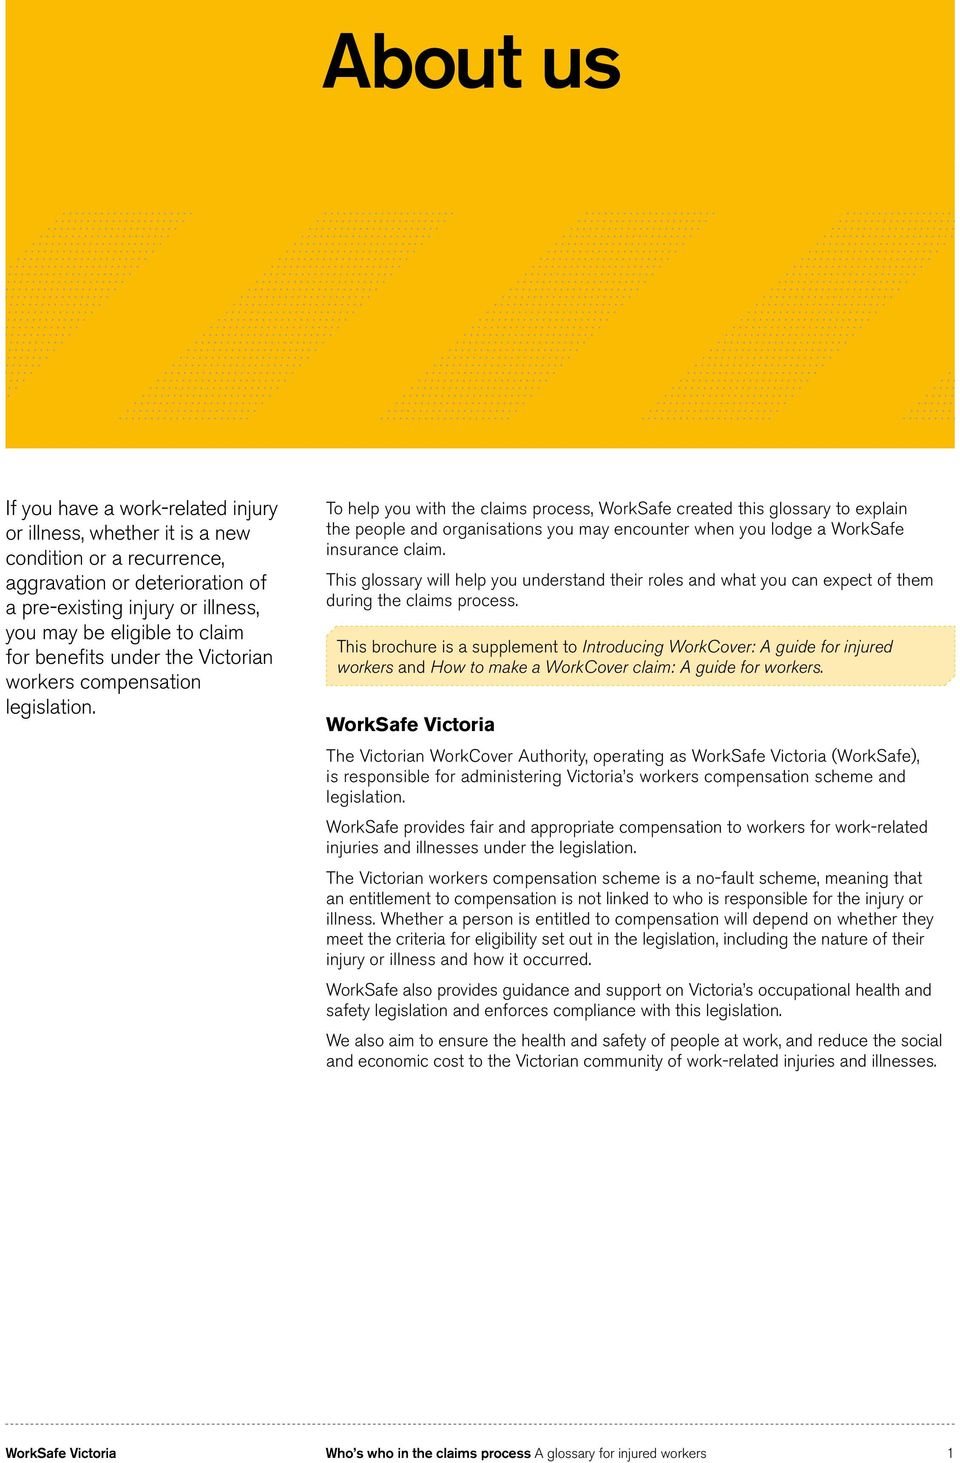 To help you with the, WorkSafe created this glossary to explain the people and organisations you may encounter when you lodge a WorkSafe insurance claim.